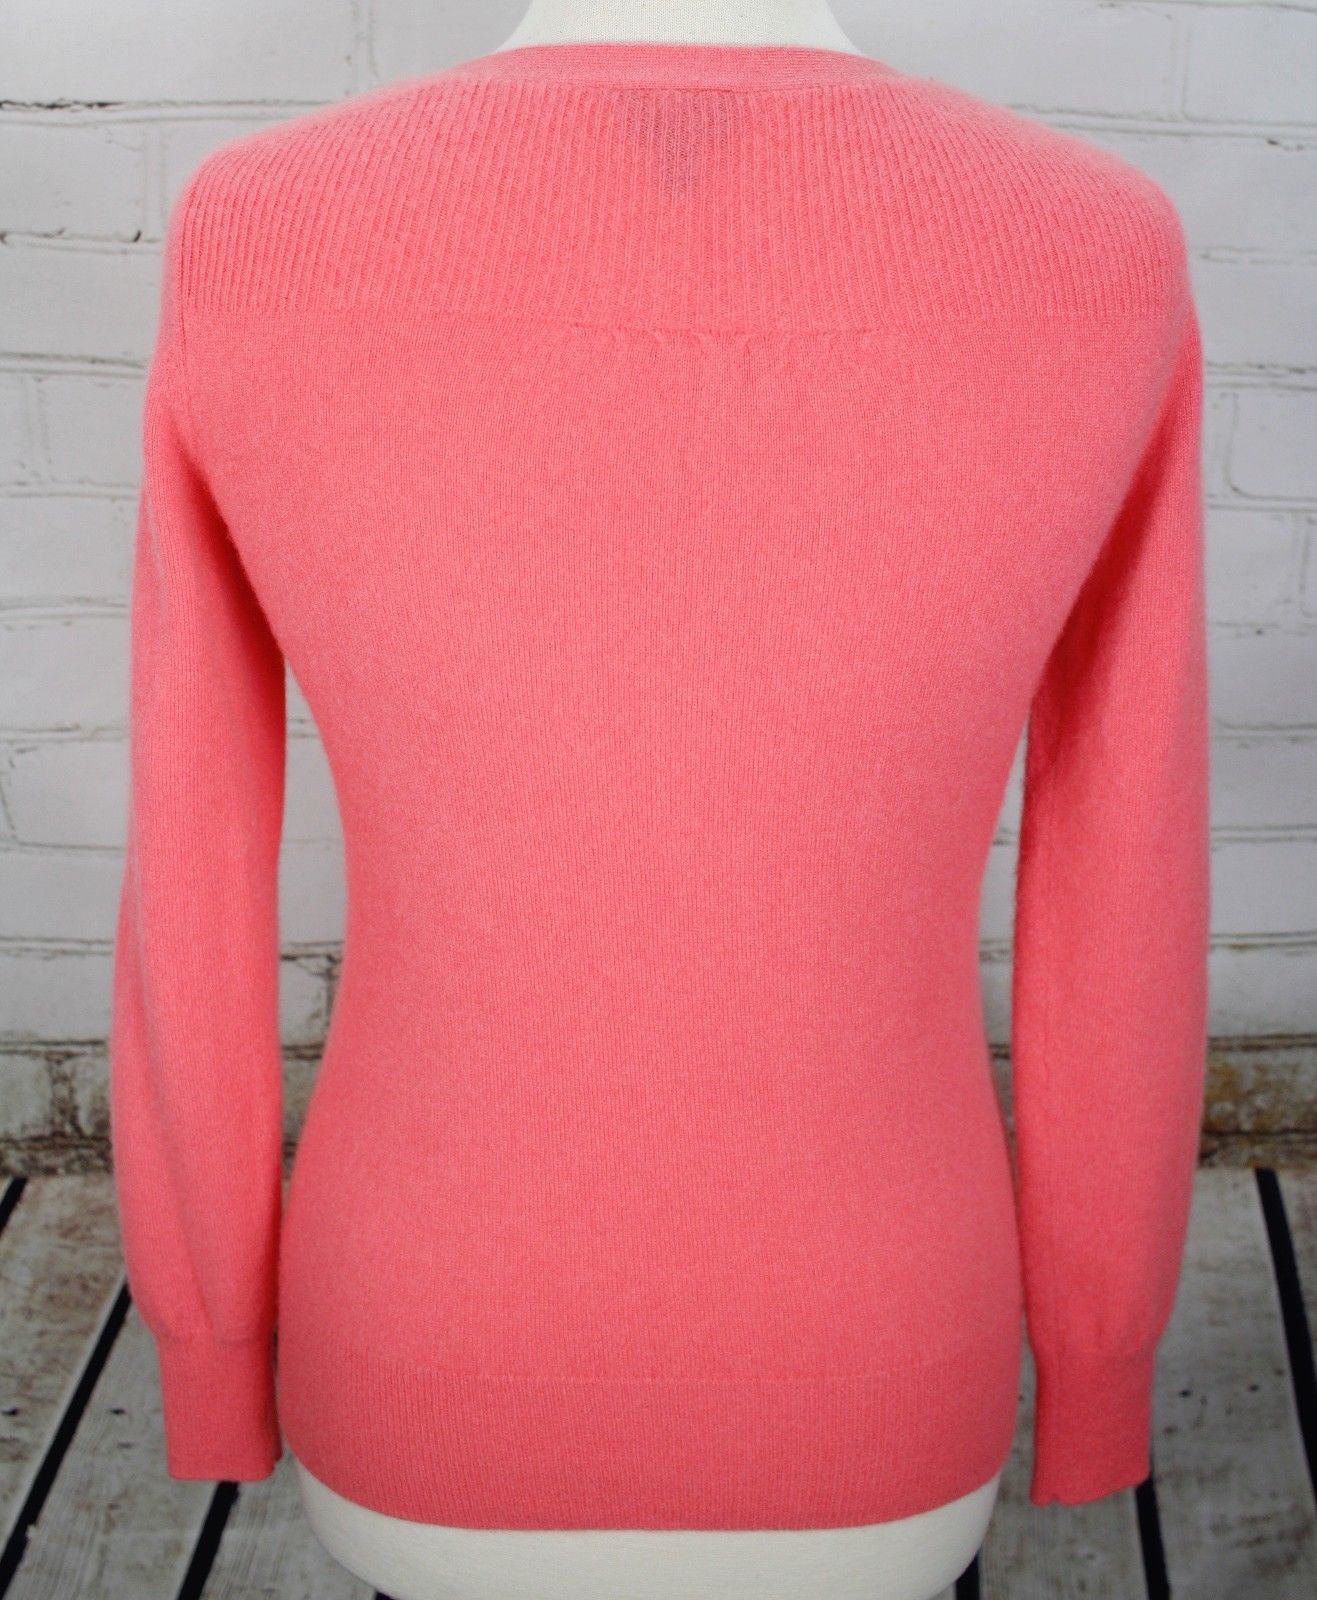 Talbots 100% Cashmere V-Neck Sweater Size XS Pink Pullover Lightweight image 4